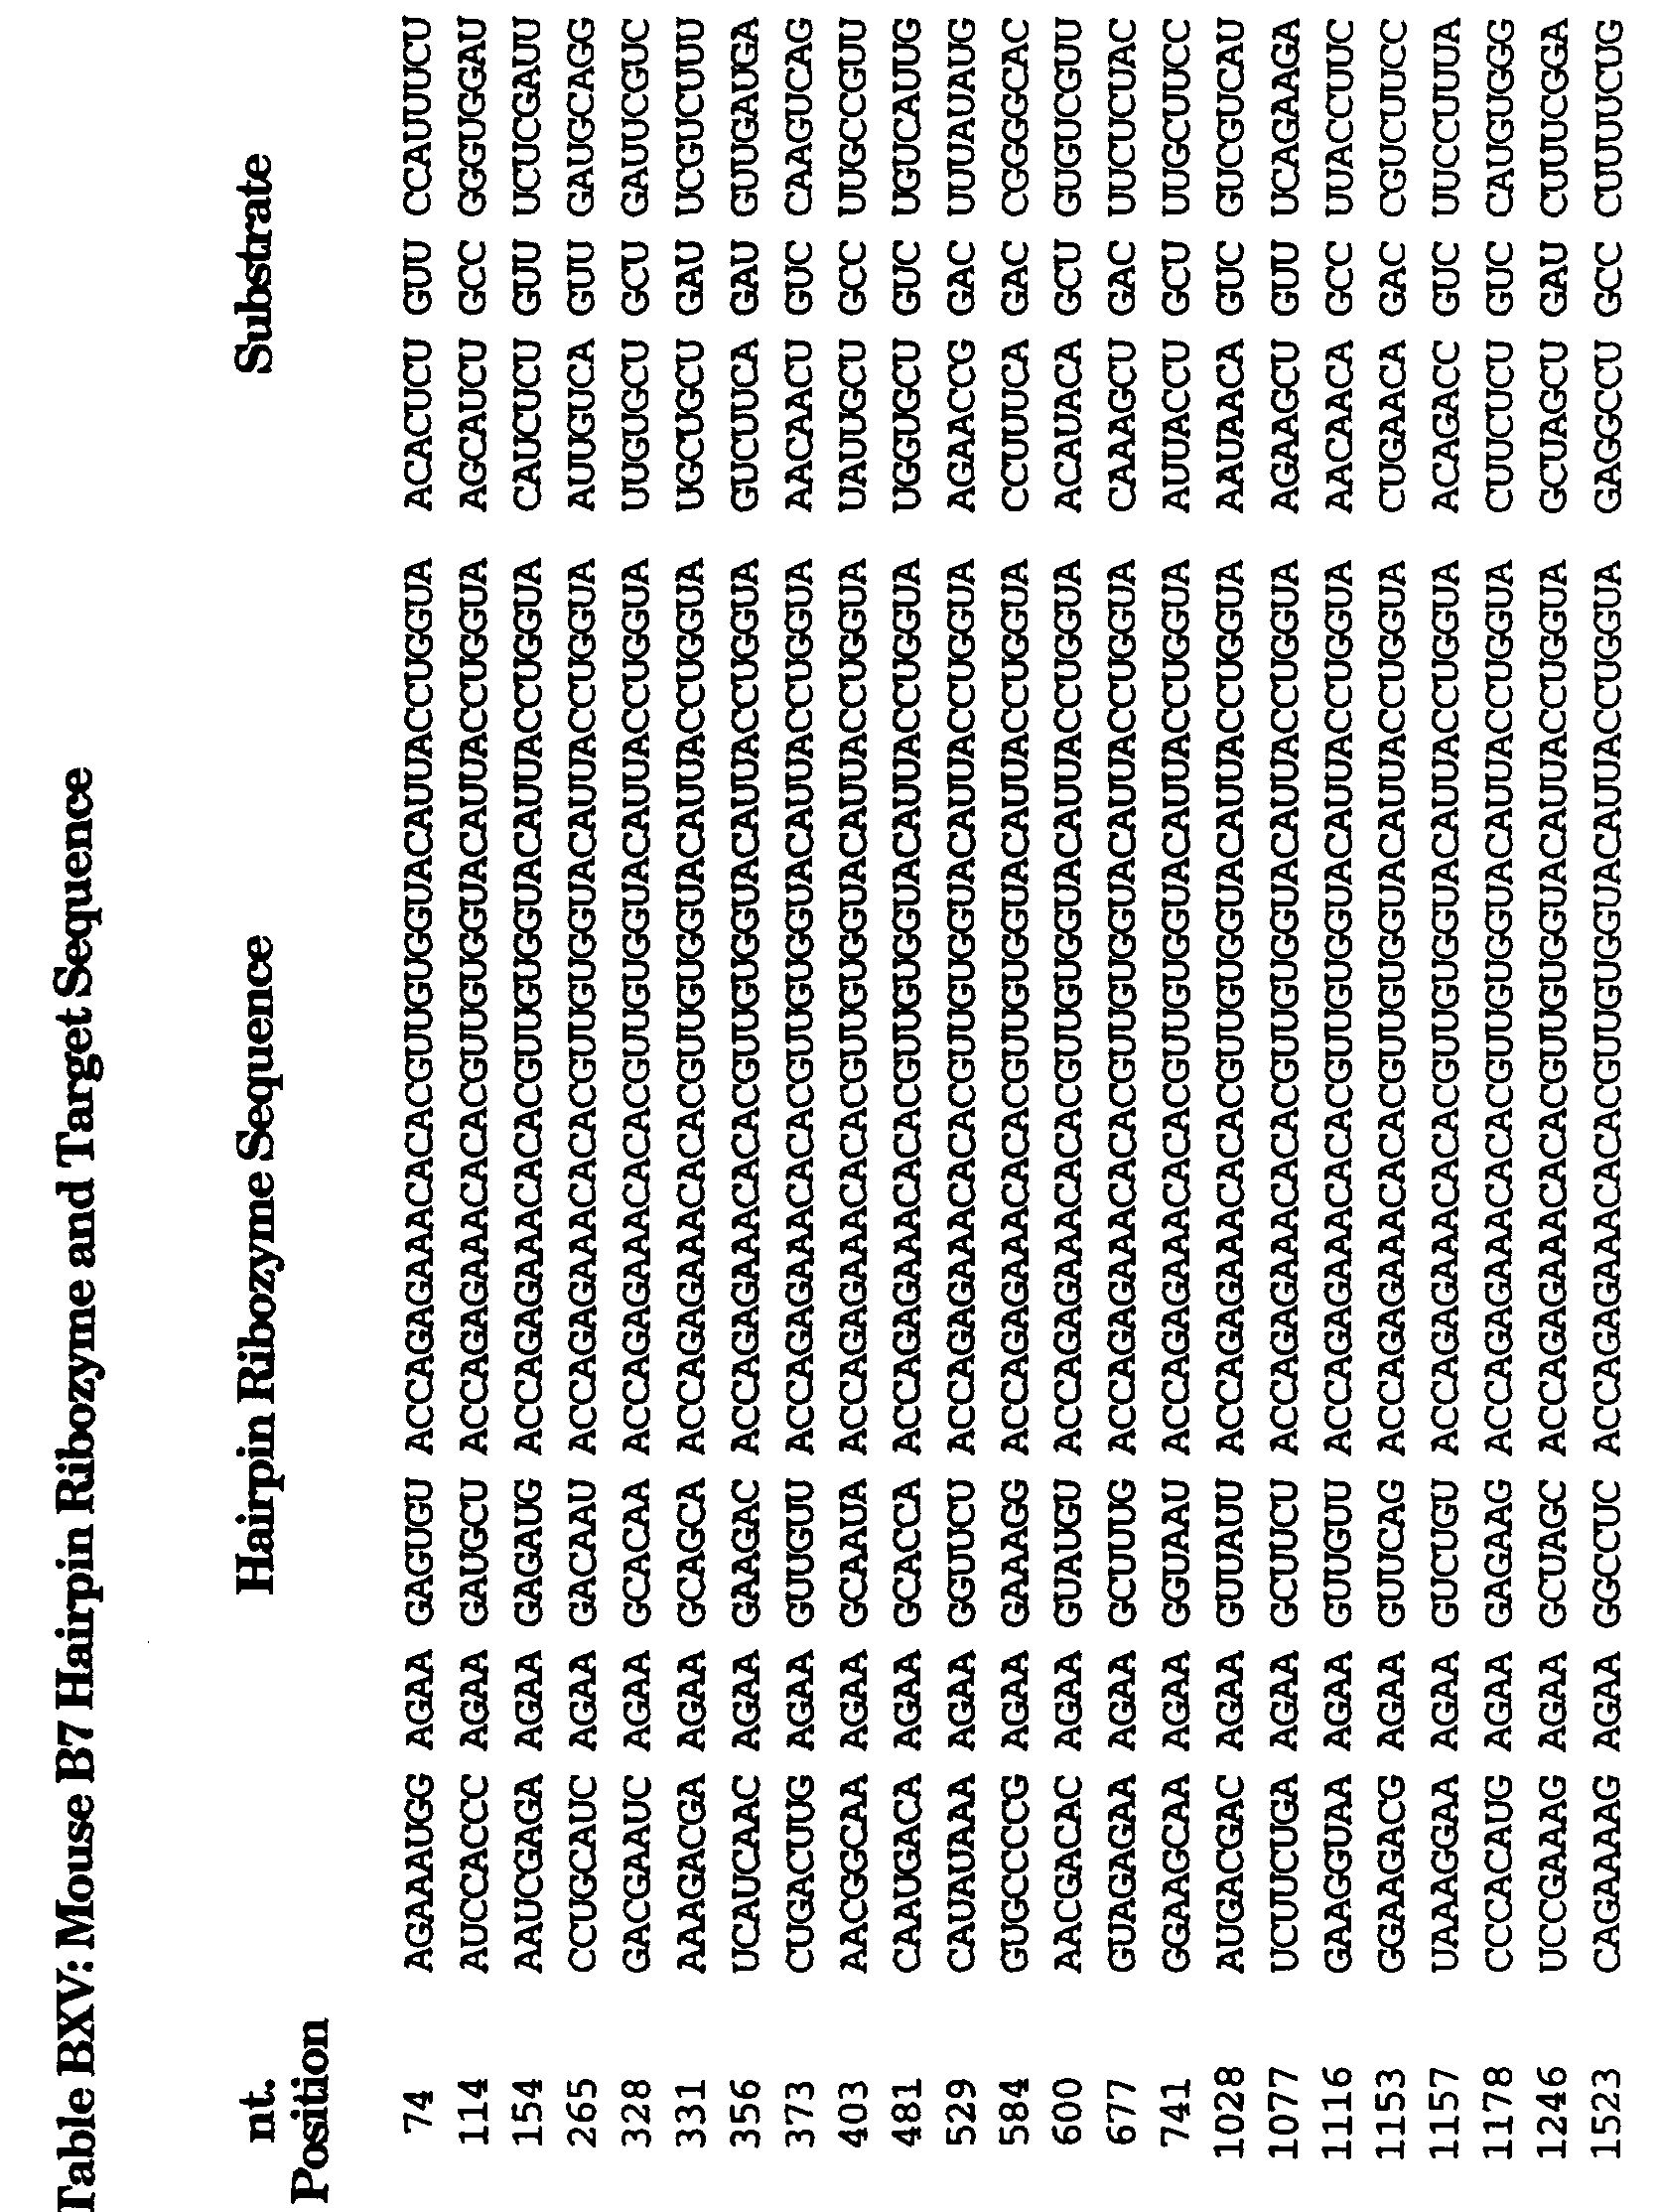 Wo1996018736a2 Method And Reagent For Treatment Of Arthritic Mouse Terminator X3 Figure Imgf000217 0001